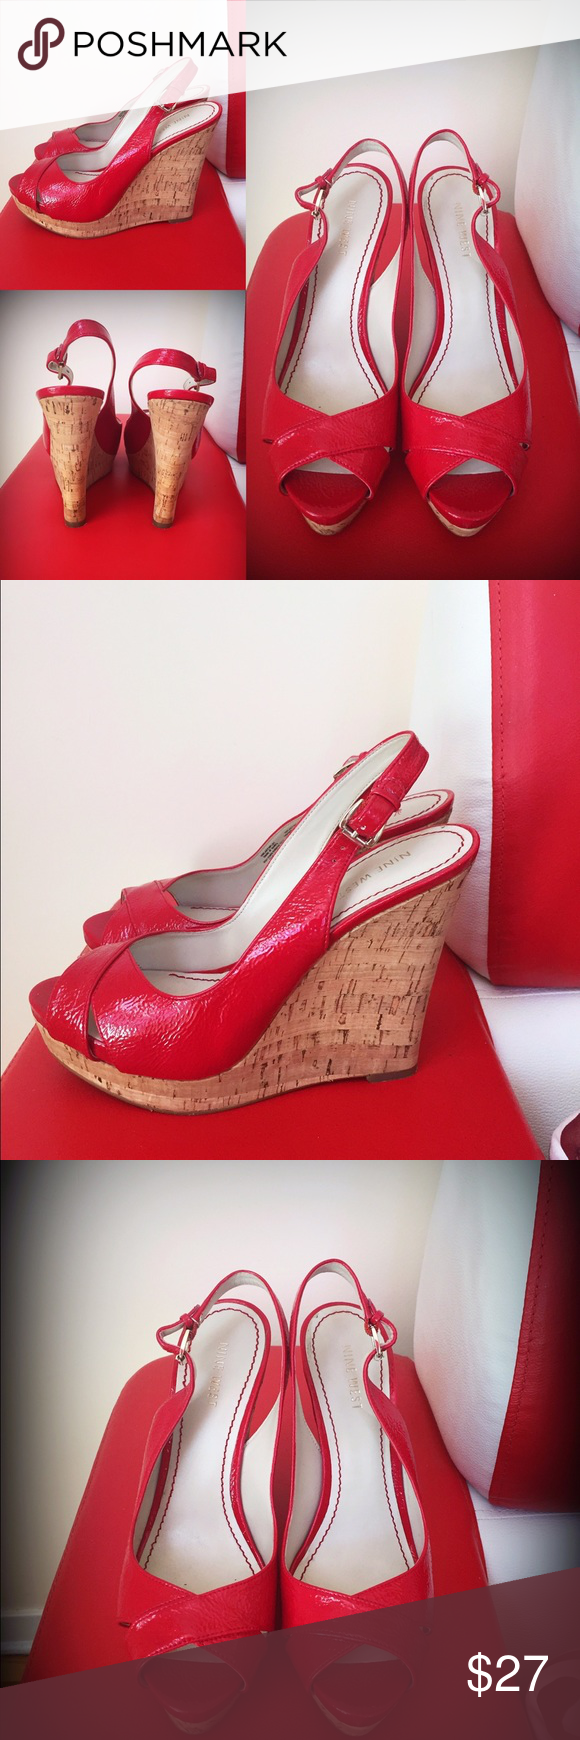 NINE WEST RED PLATFORM SANDALS Worn once or twice,max! Very comfortable and easy to walk in. Feel free to bundle🎊🎁🎈🎉🌹👍🏻 Nine West Shoes Platforms